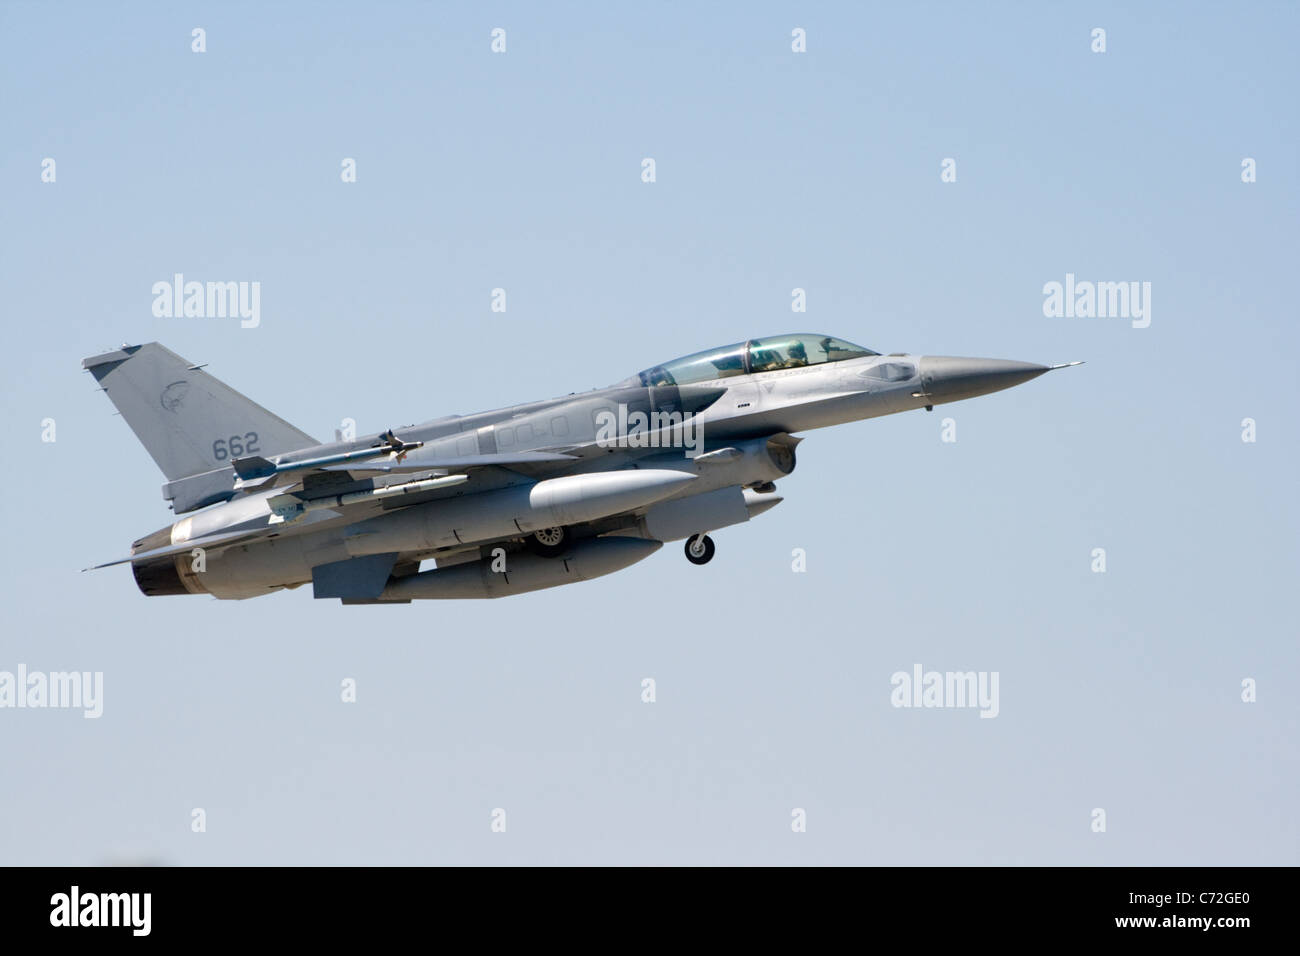 Singaporean Air Force F-16D takes off from Orange airbase in France as part of Exercise Garuda IV. - Stock Image